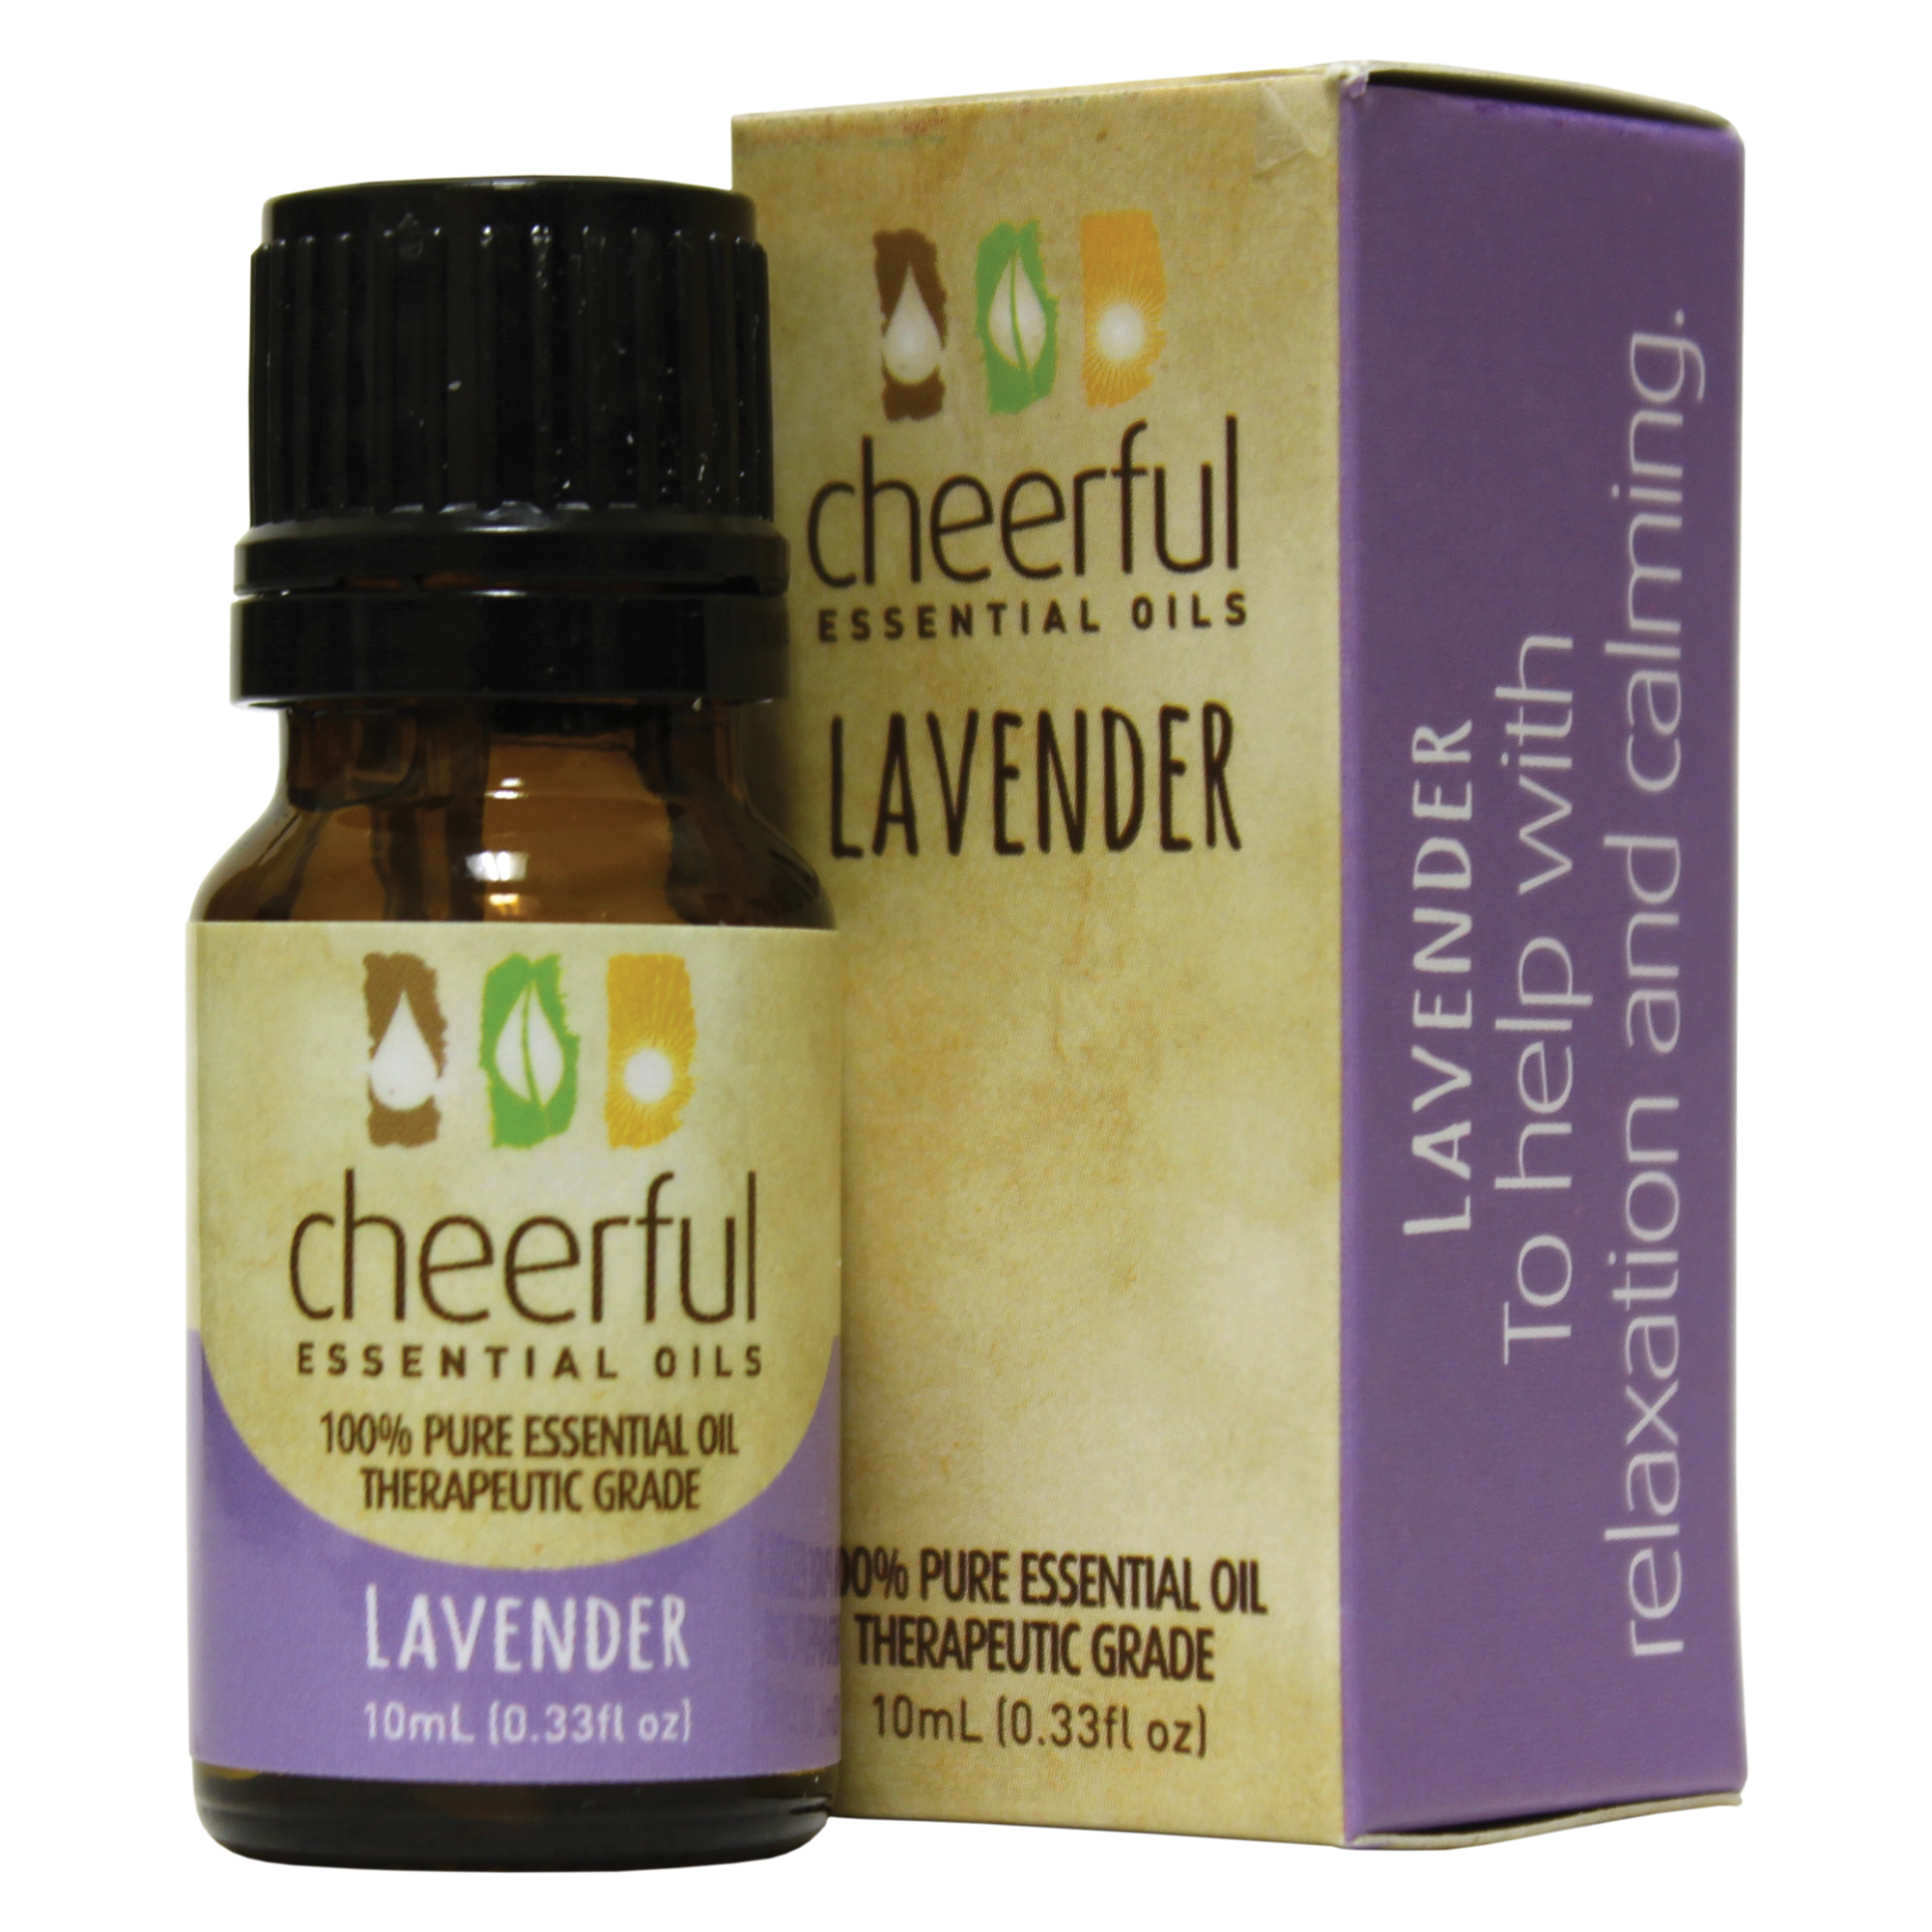 LAVENDER ESSENTIAL OIL 10 ML UPC# 674623018140